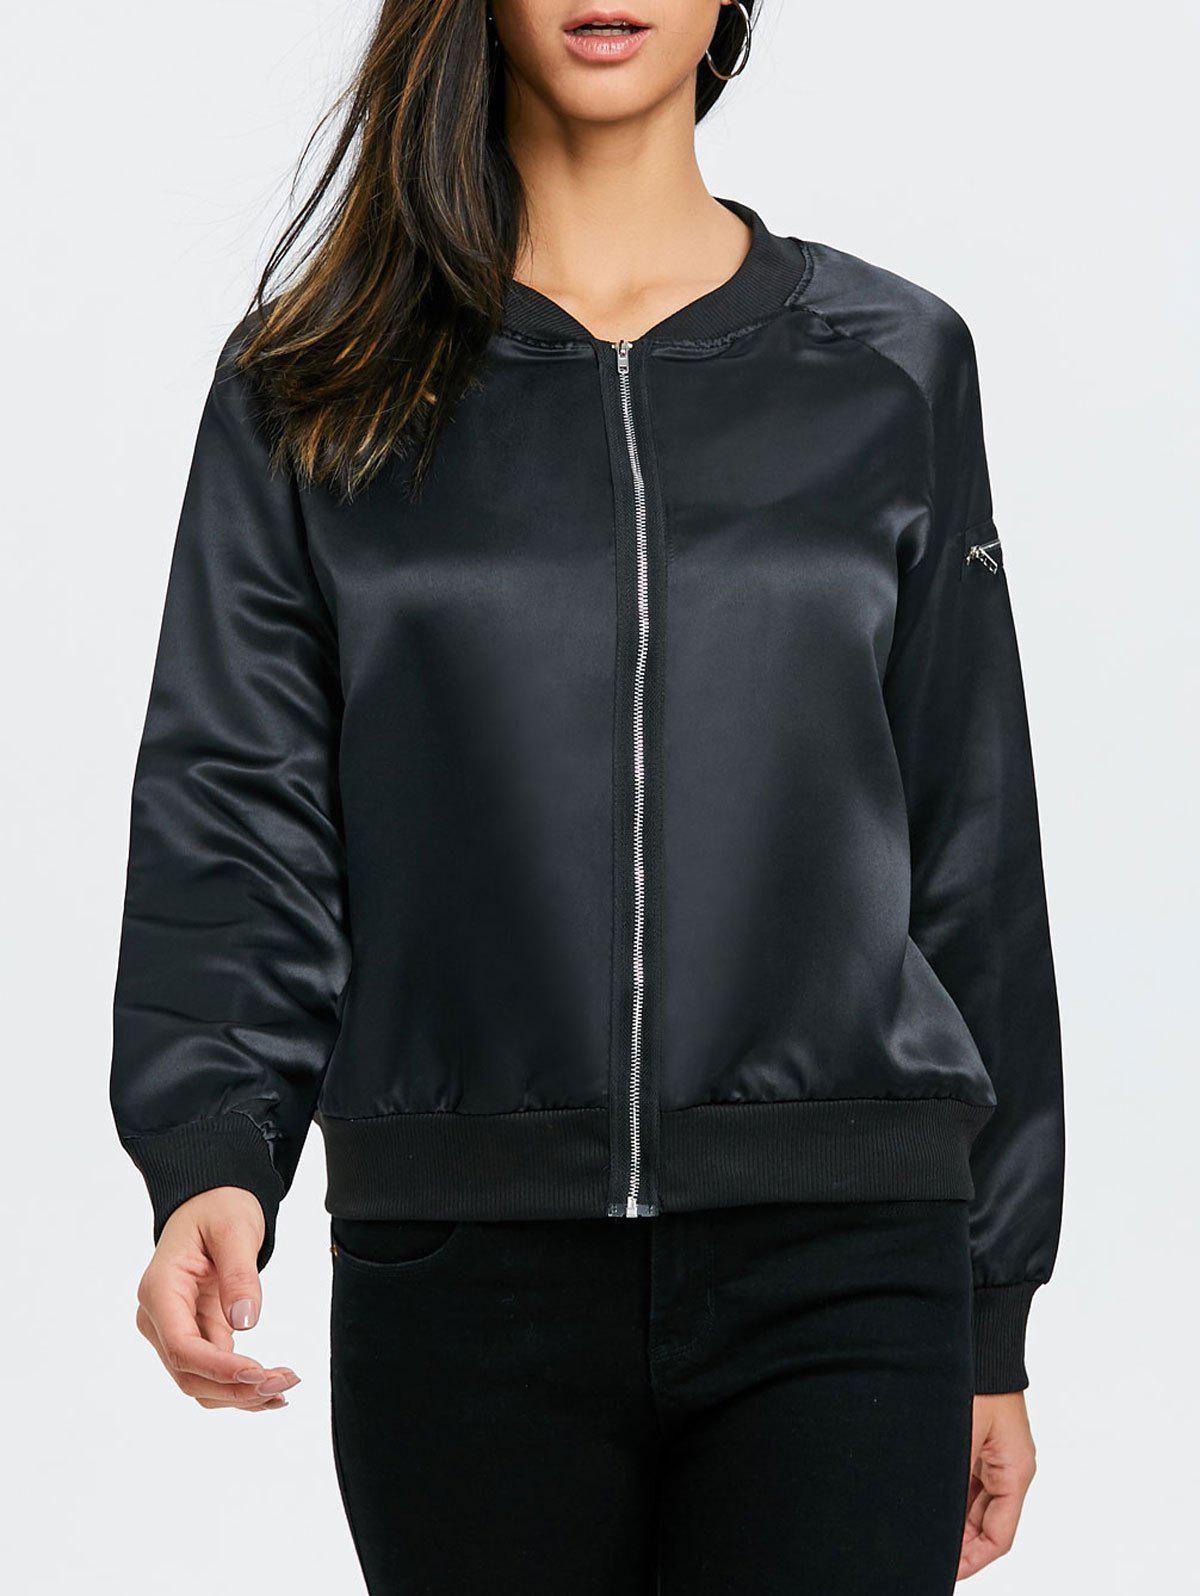 Zip Fly Bomber Jacket - Noir XL